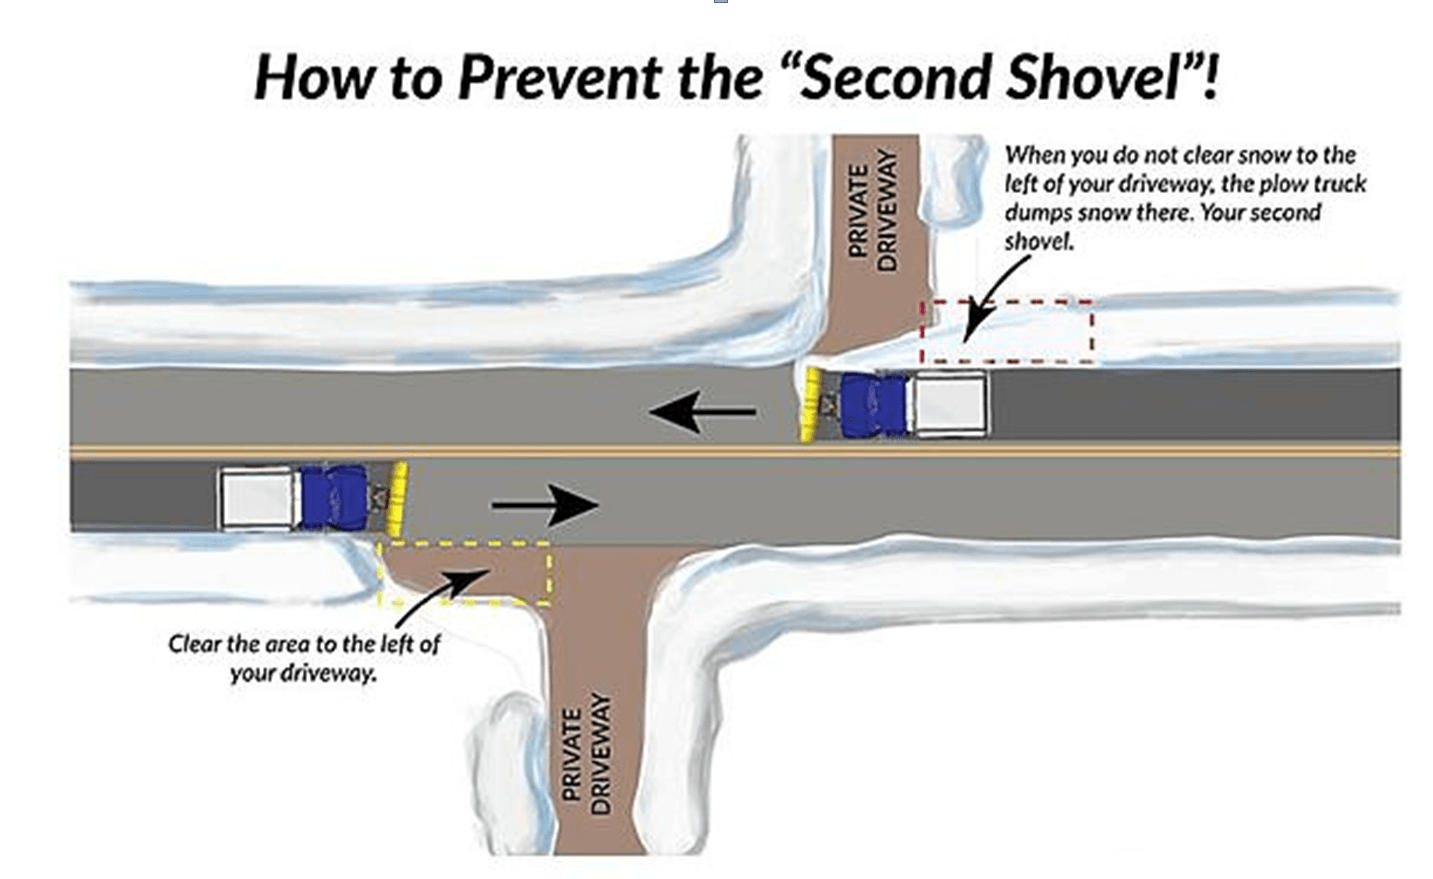 Diagram of Driveway Shoveling procedure described